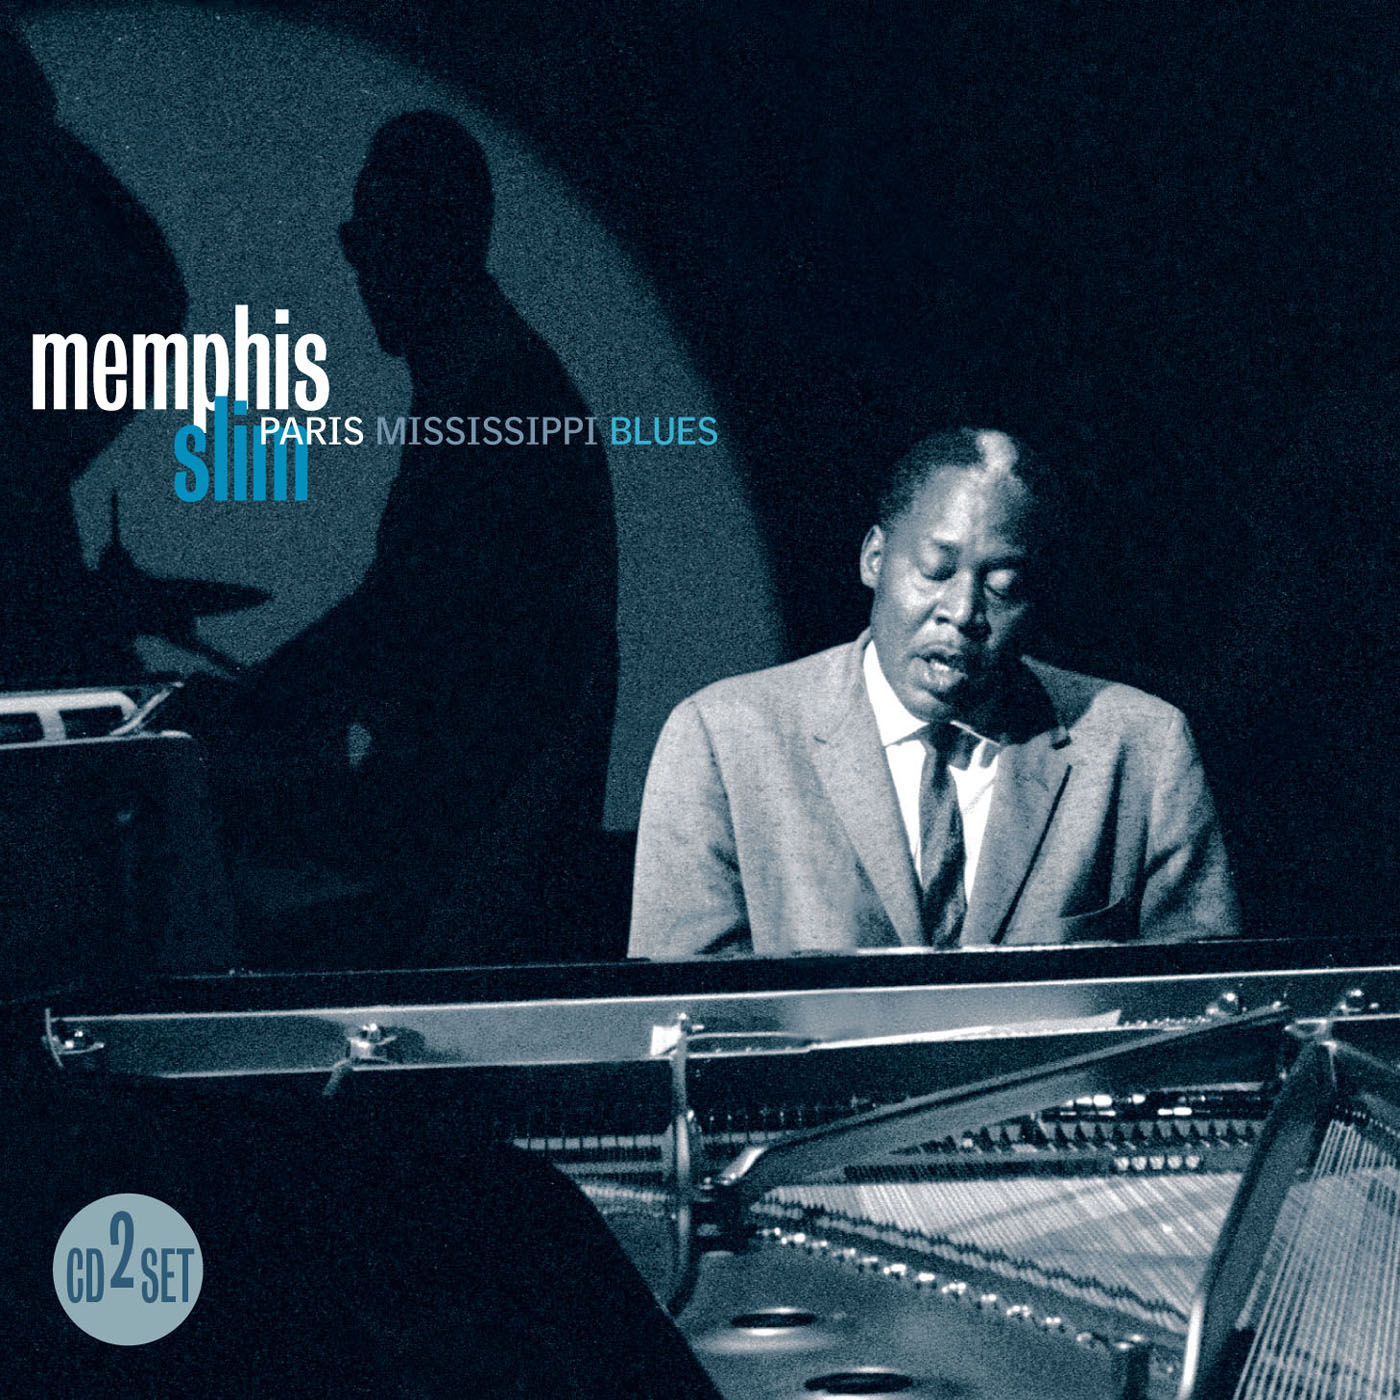 Paris Mississippi Blues by Memphis Slim cover